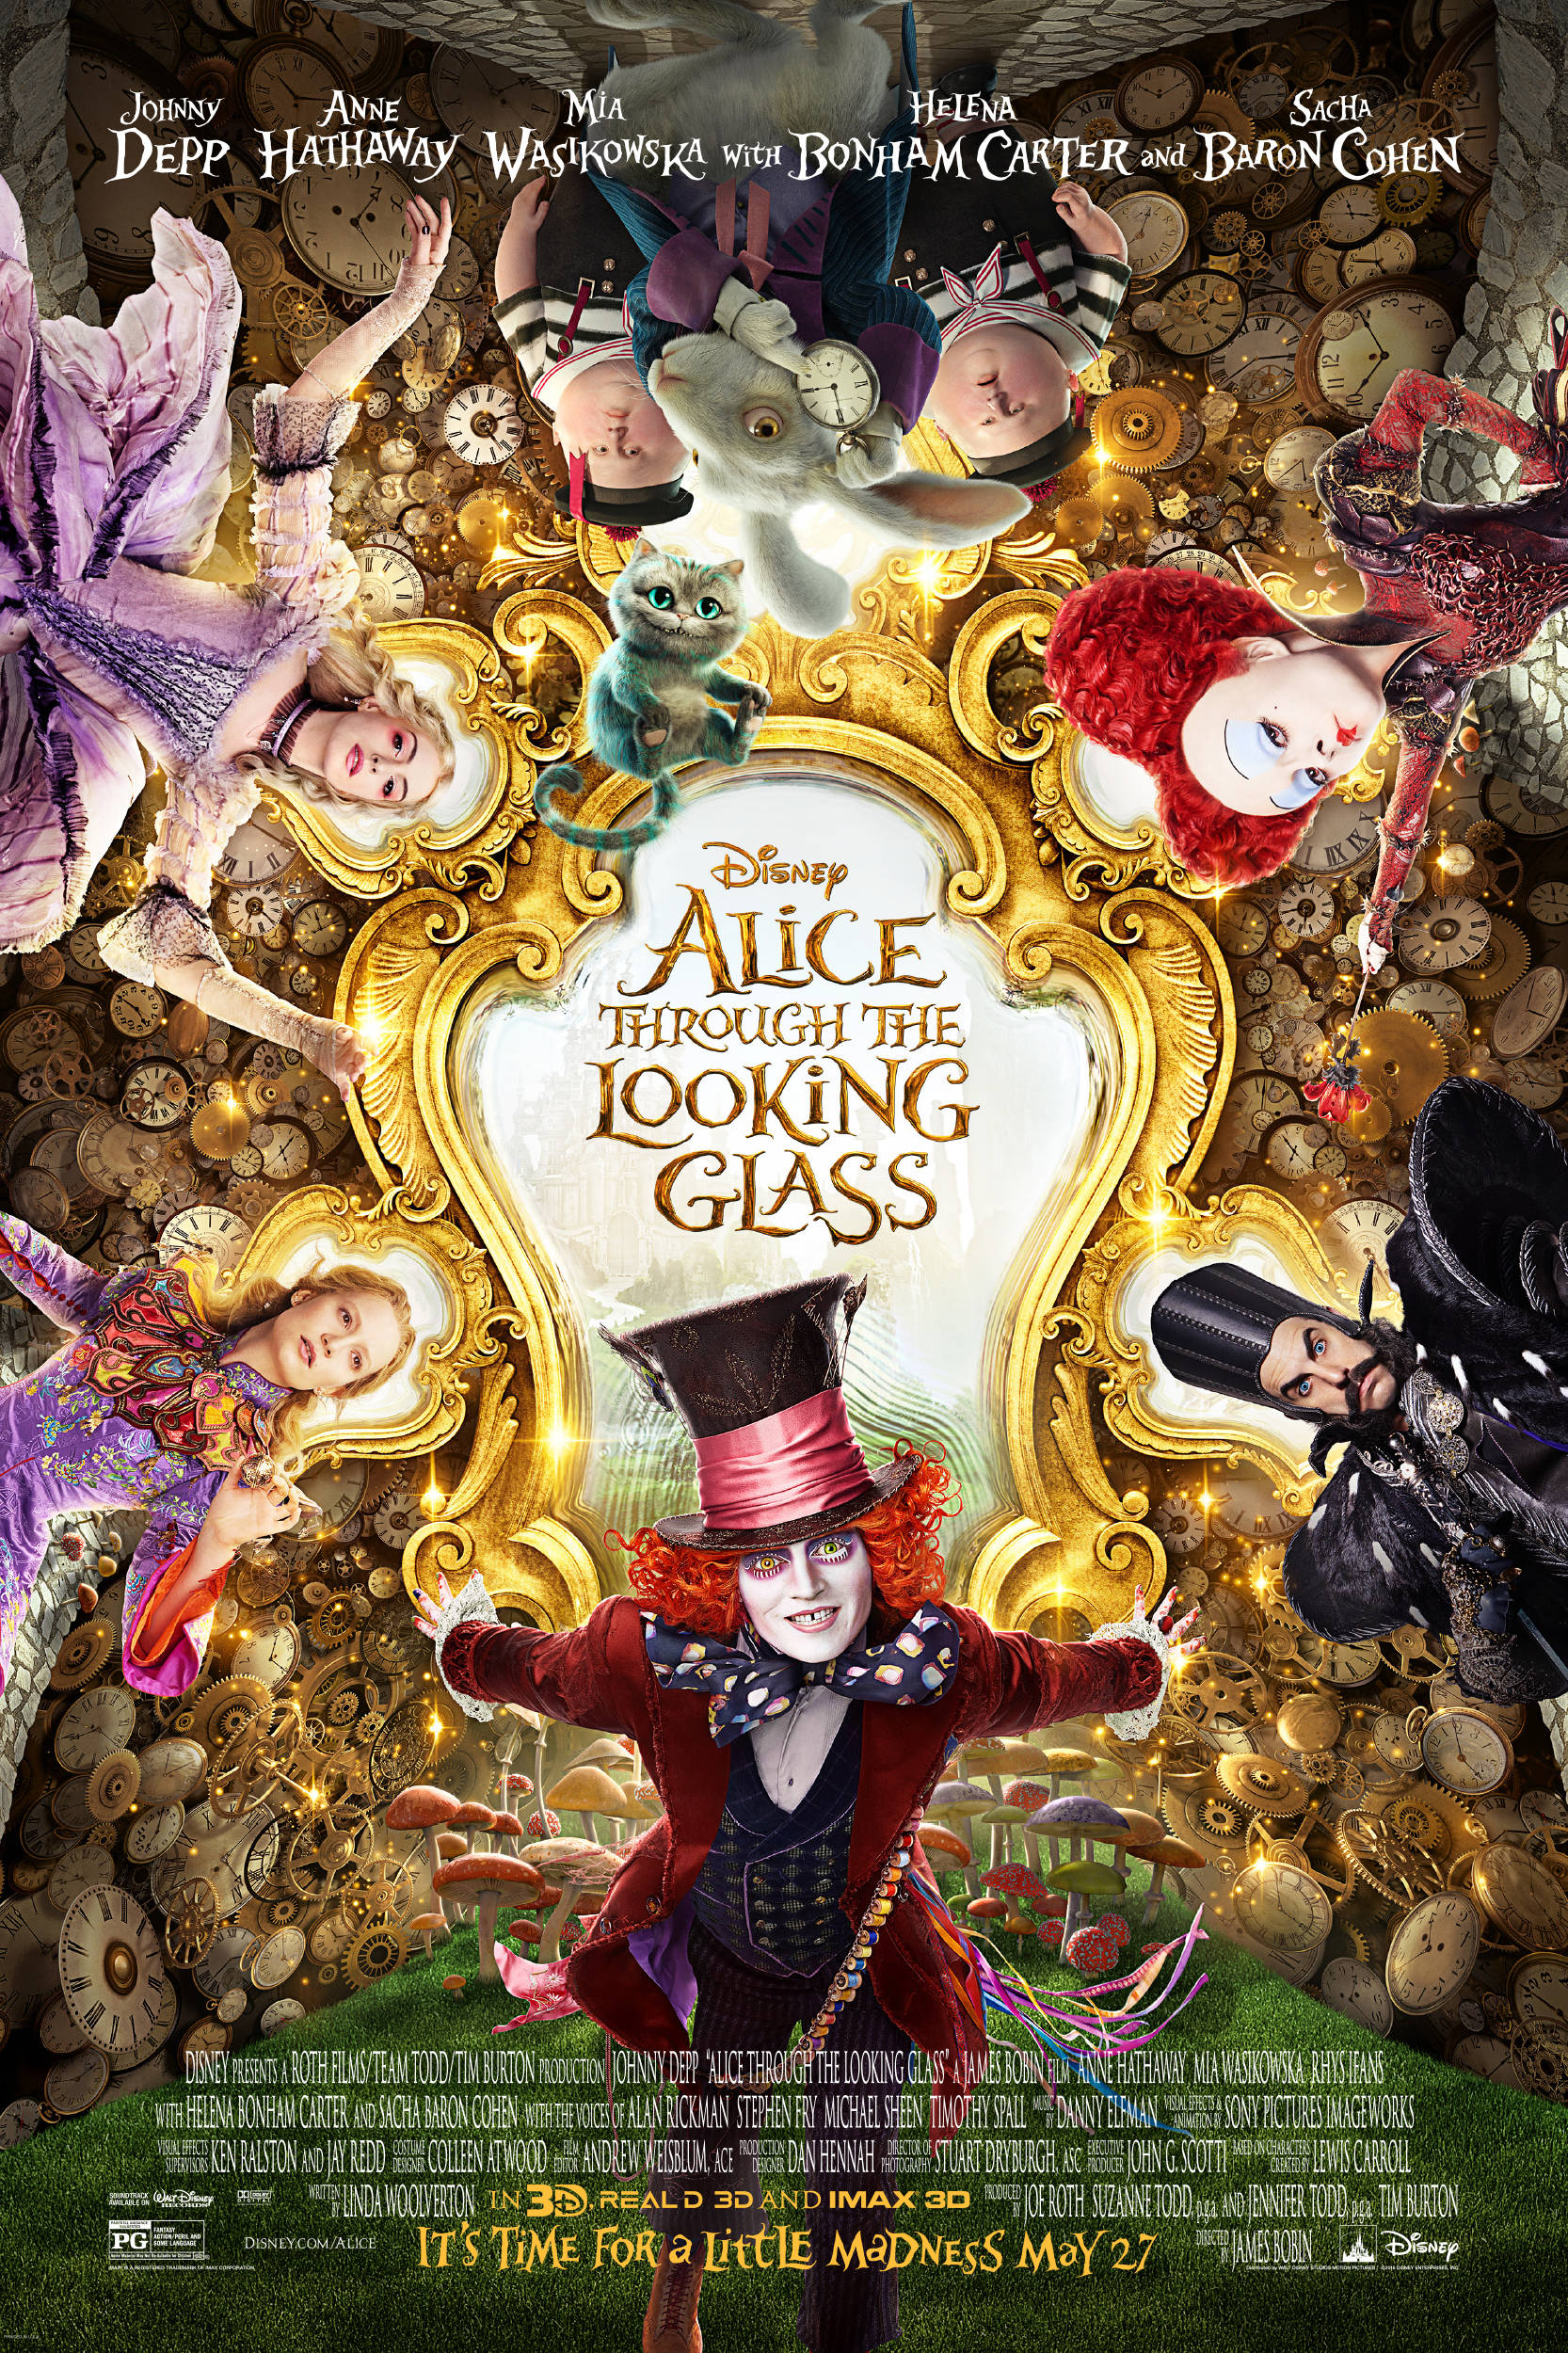 Alice In Wonderland Castle Outline Wiring Diagrams Key For Nissan Remote Control Circuit Board 315mhz Best Qualityboard Through The Looking Glass Disney Wiki Fandom Powered By Wikia Rh Com